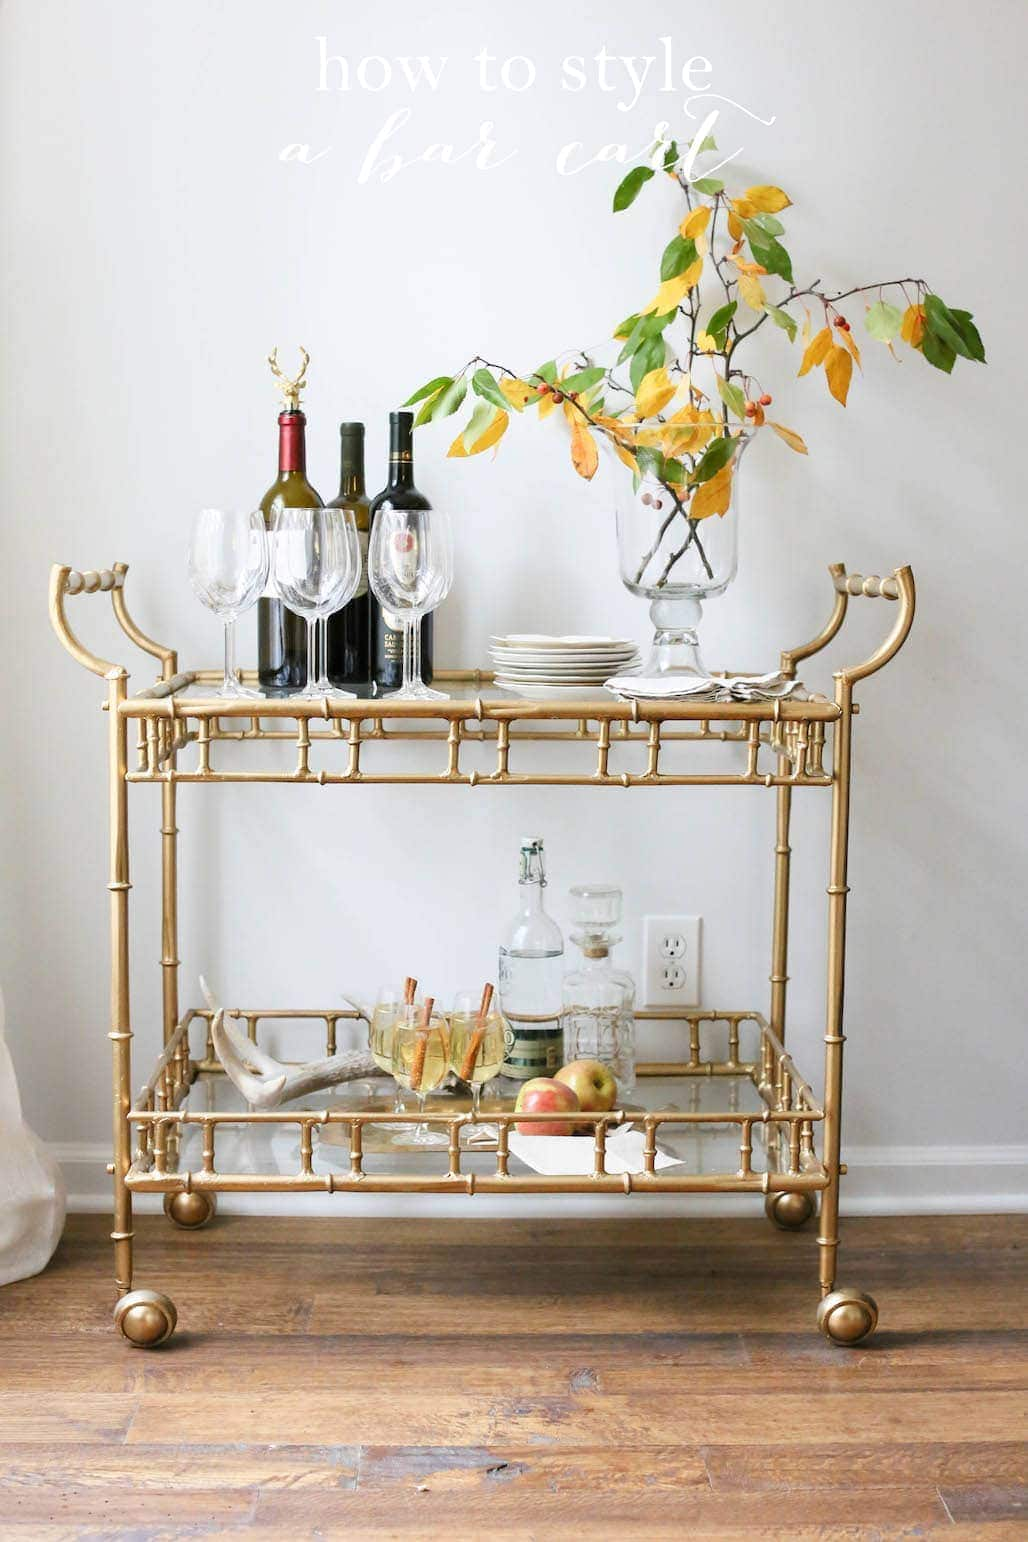 How To Style A Bar Cart In Minutes